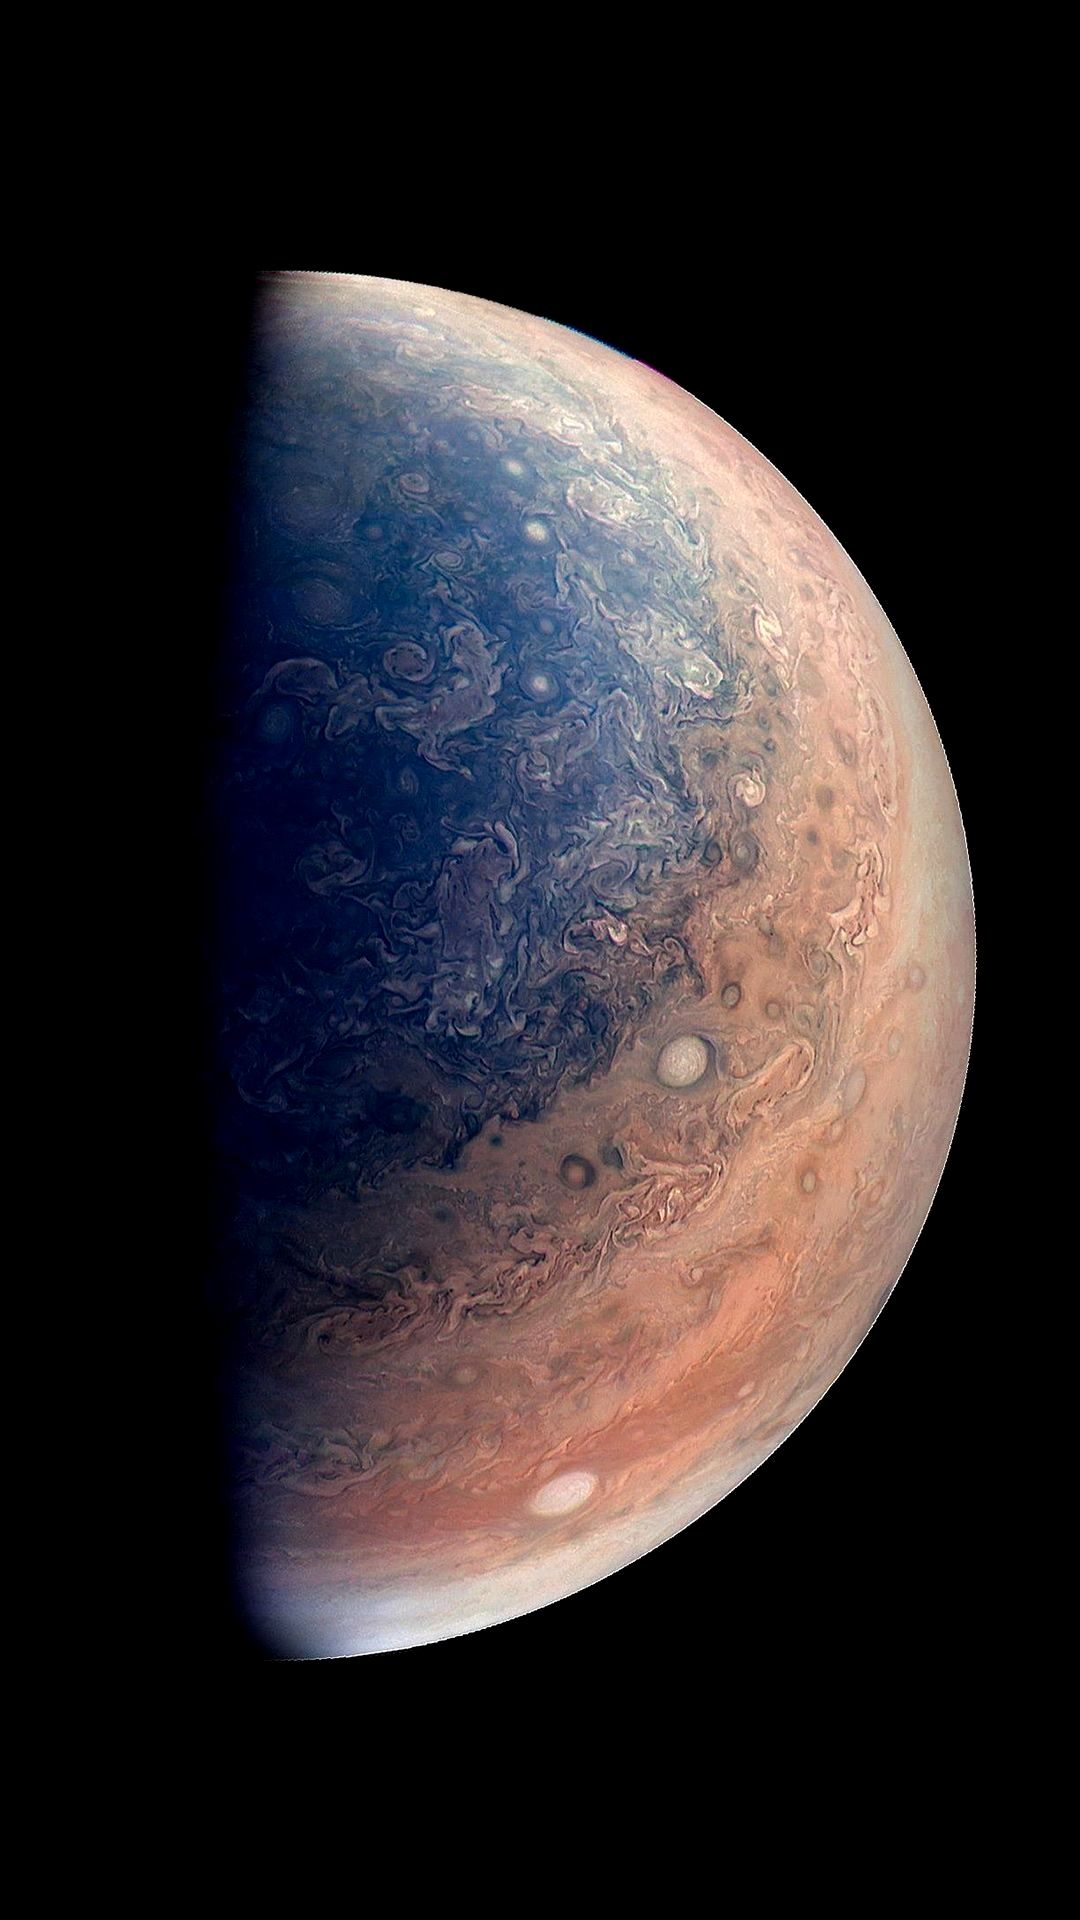 Jupiter Wallpaper 4k Iphone Trick Di 2020 Wallpaper Iphone Alam Semesta Pemandangan